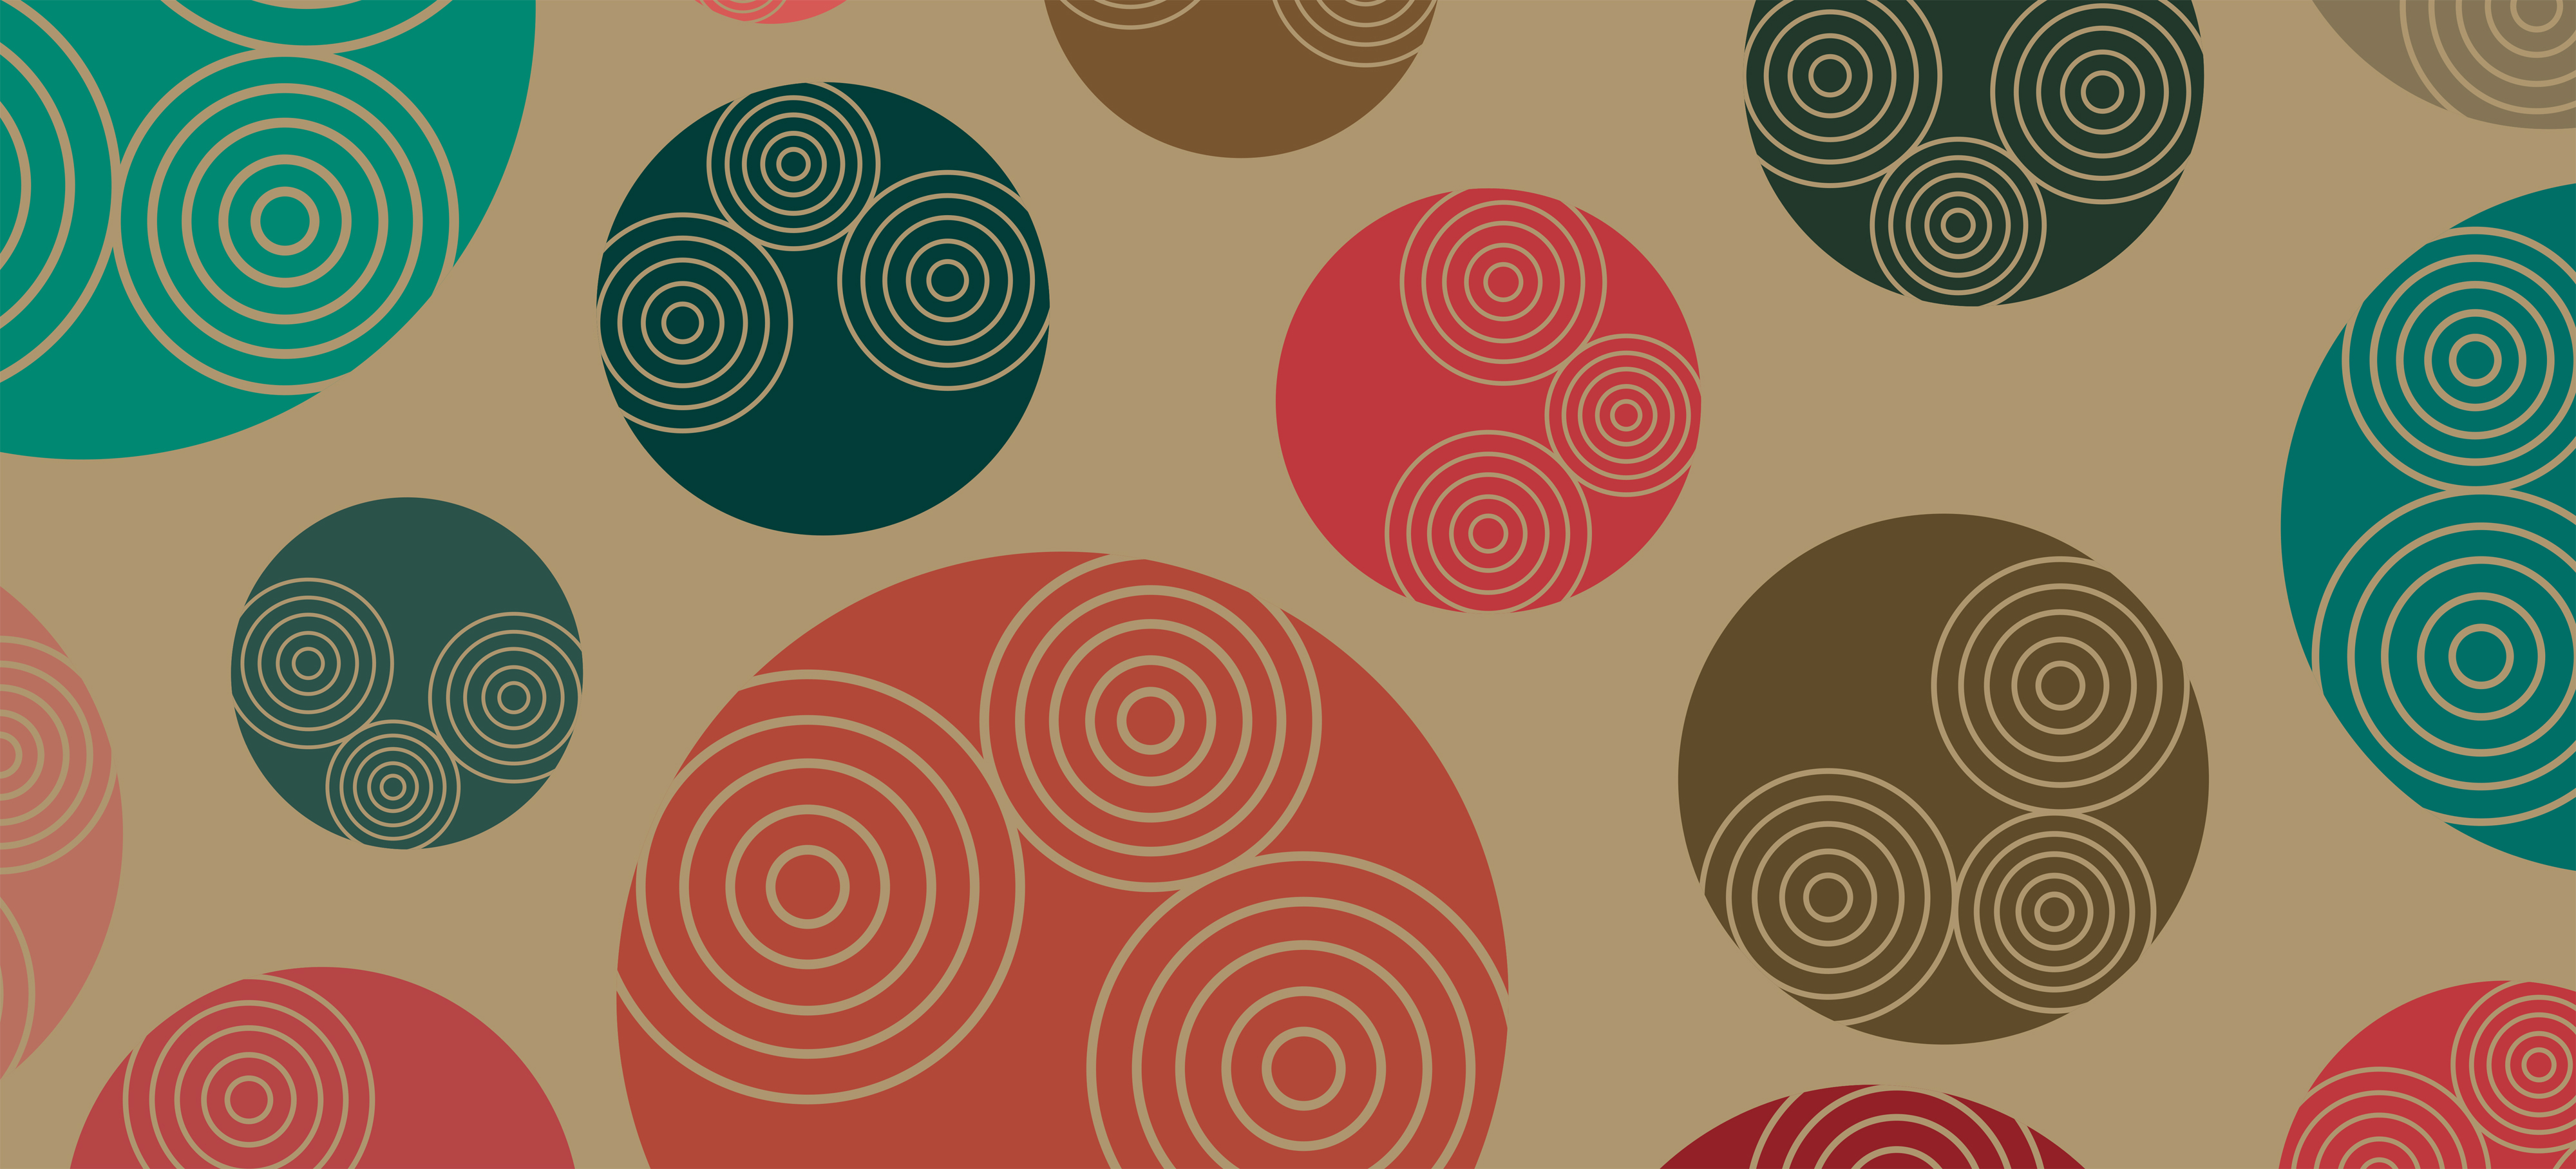 Retro-styled 70s background pattern, Poster, Seventies, Seamless, Rounded, HQ Photo